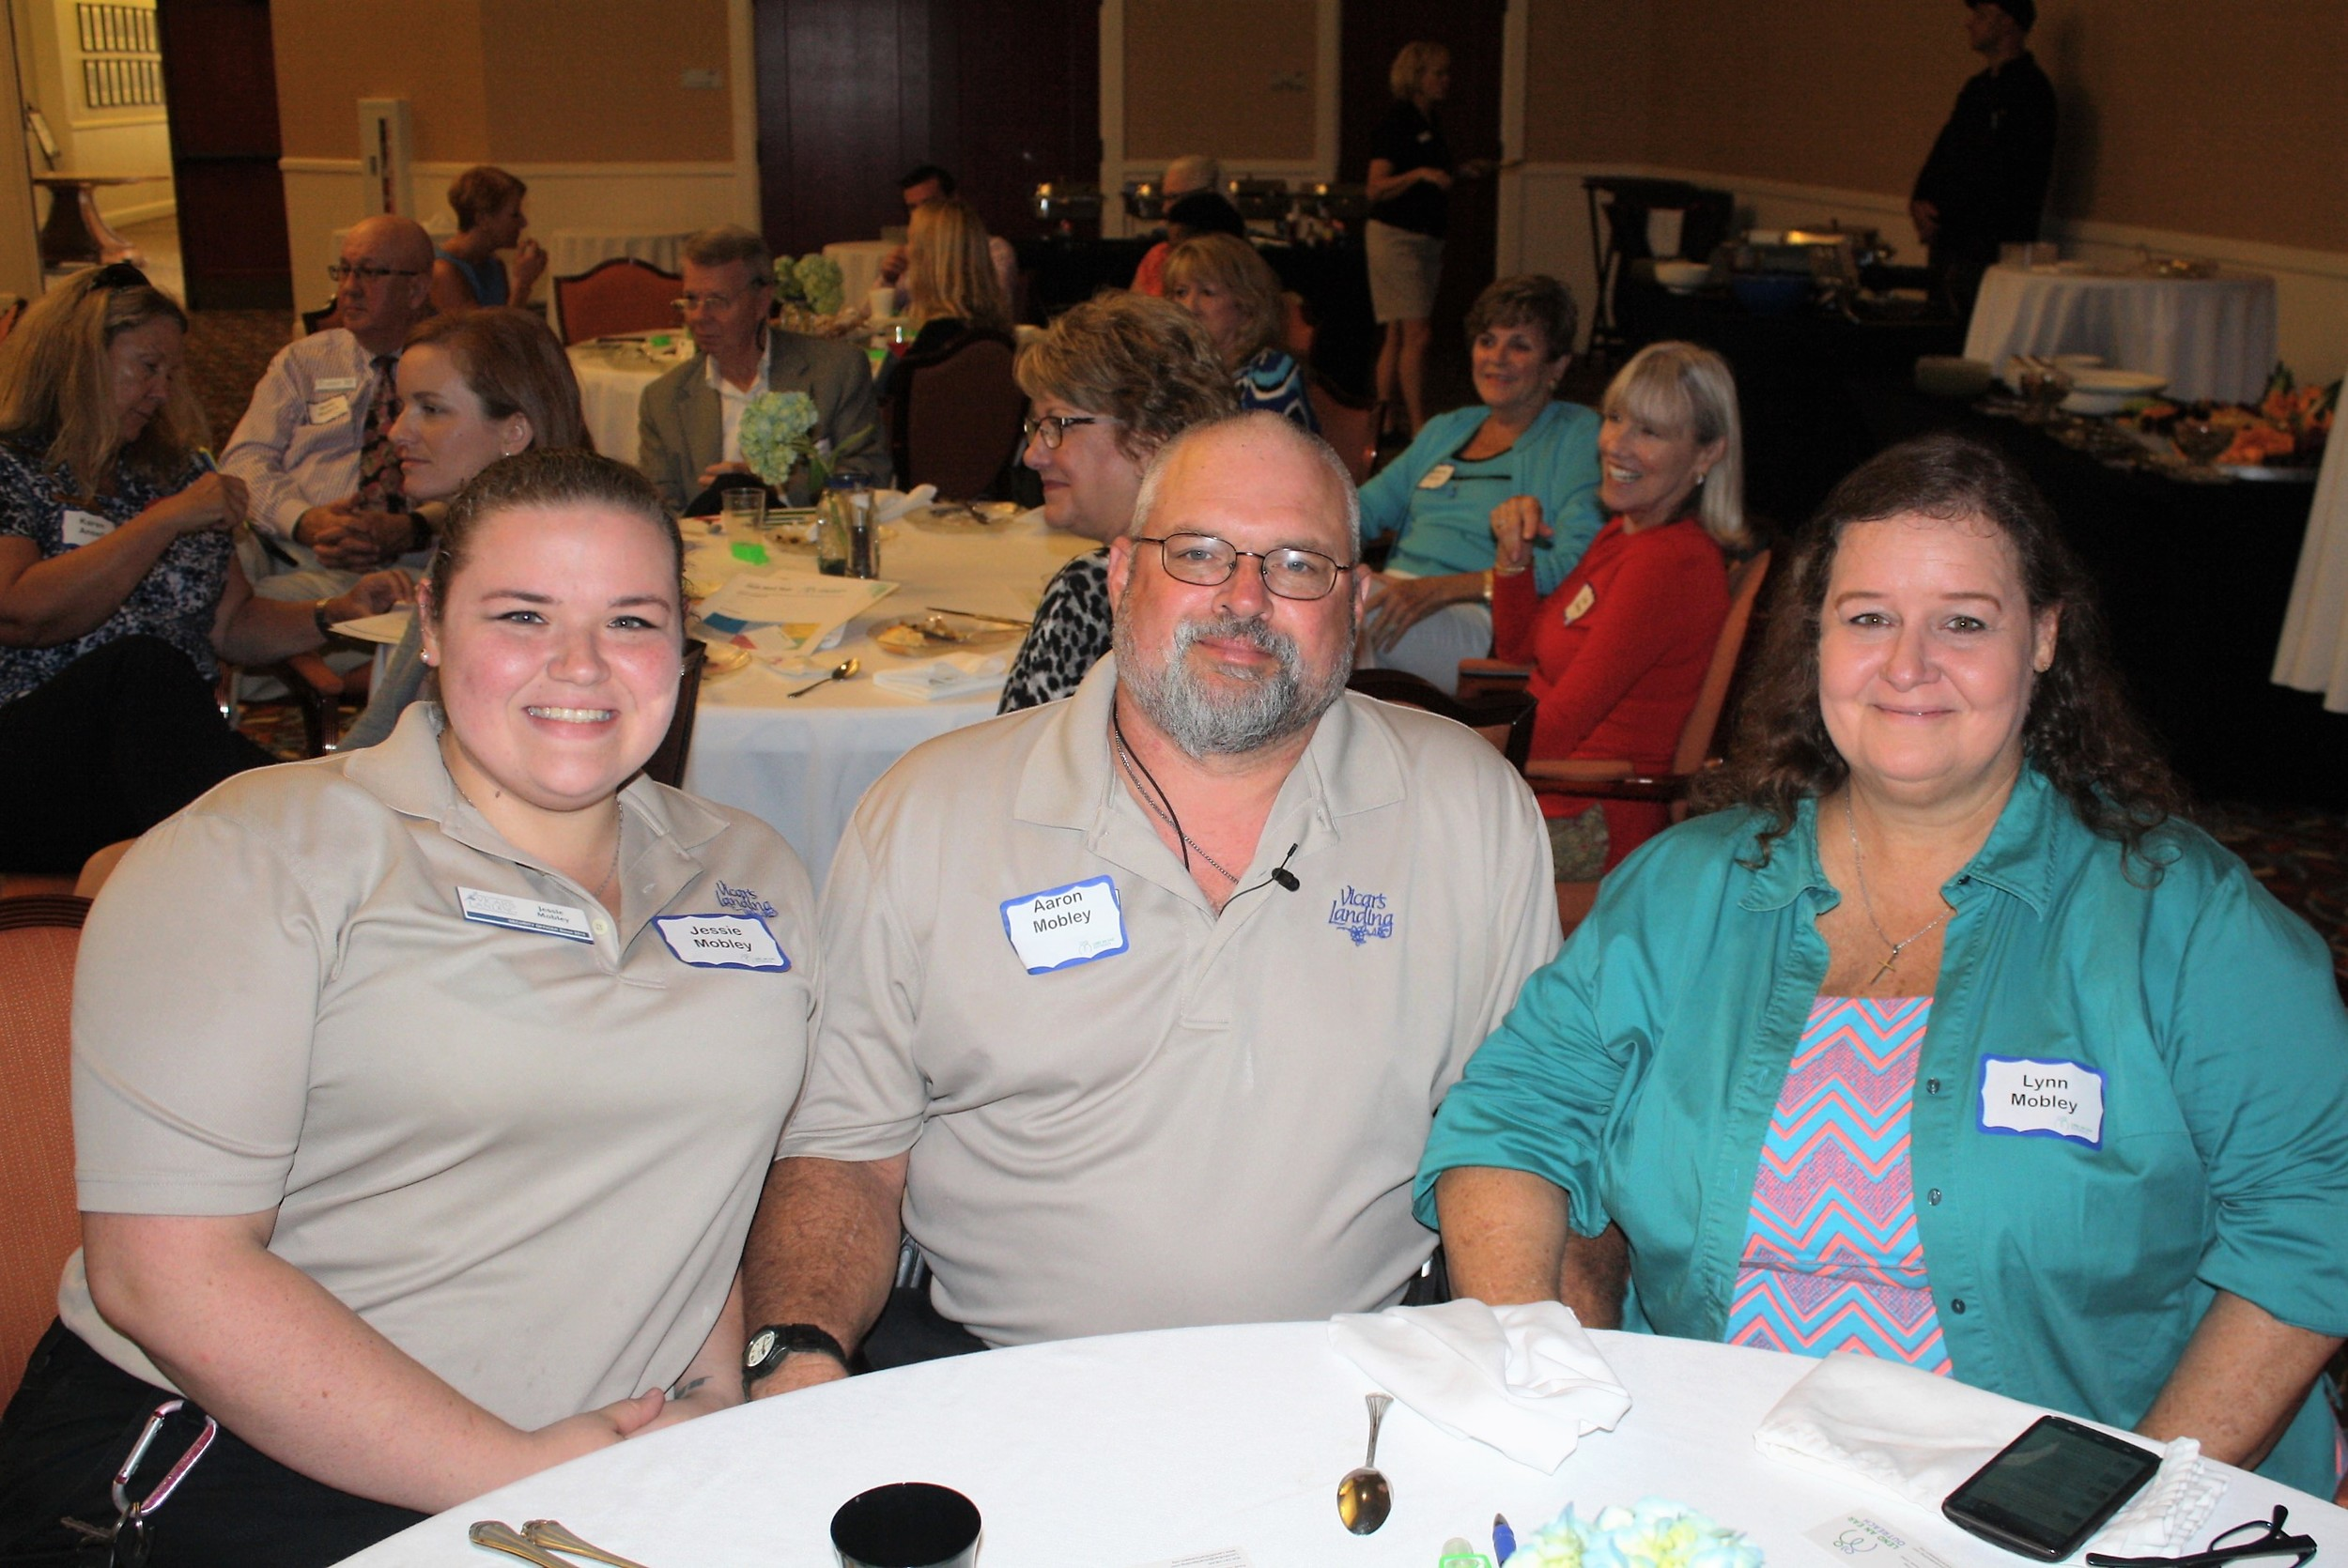 Vicar's Landing Senior Security Officer Aaron Mobley – shown here with daughter Jessie and wife Lynn – was instrumental in forging the partnership between Vicar's Landing and Lend an Ear Outreach, which provided him with much-needed hearing aids.